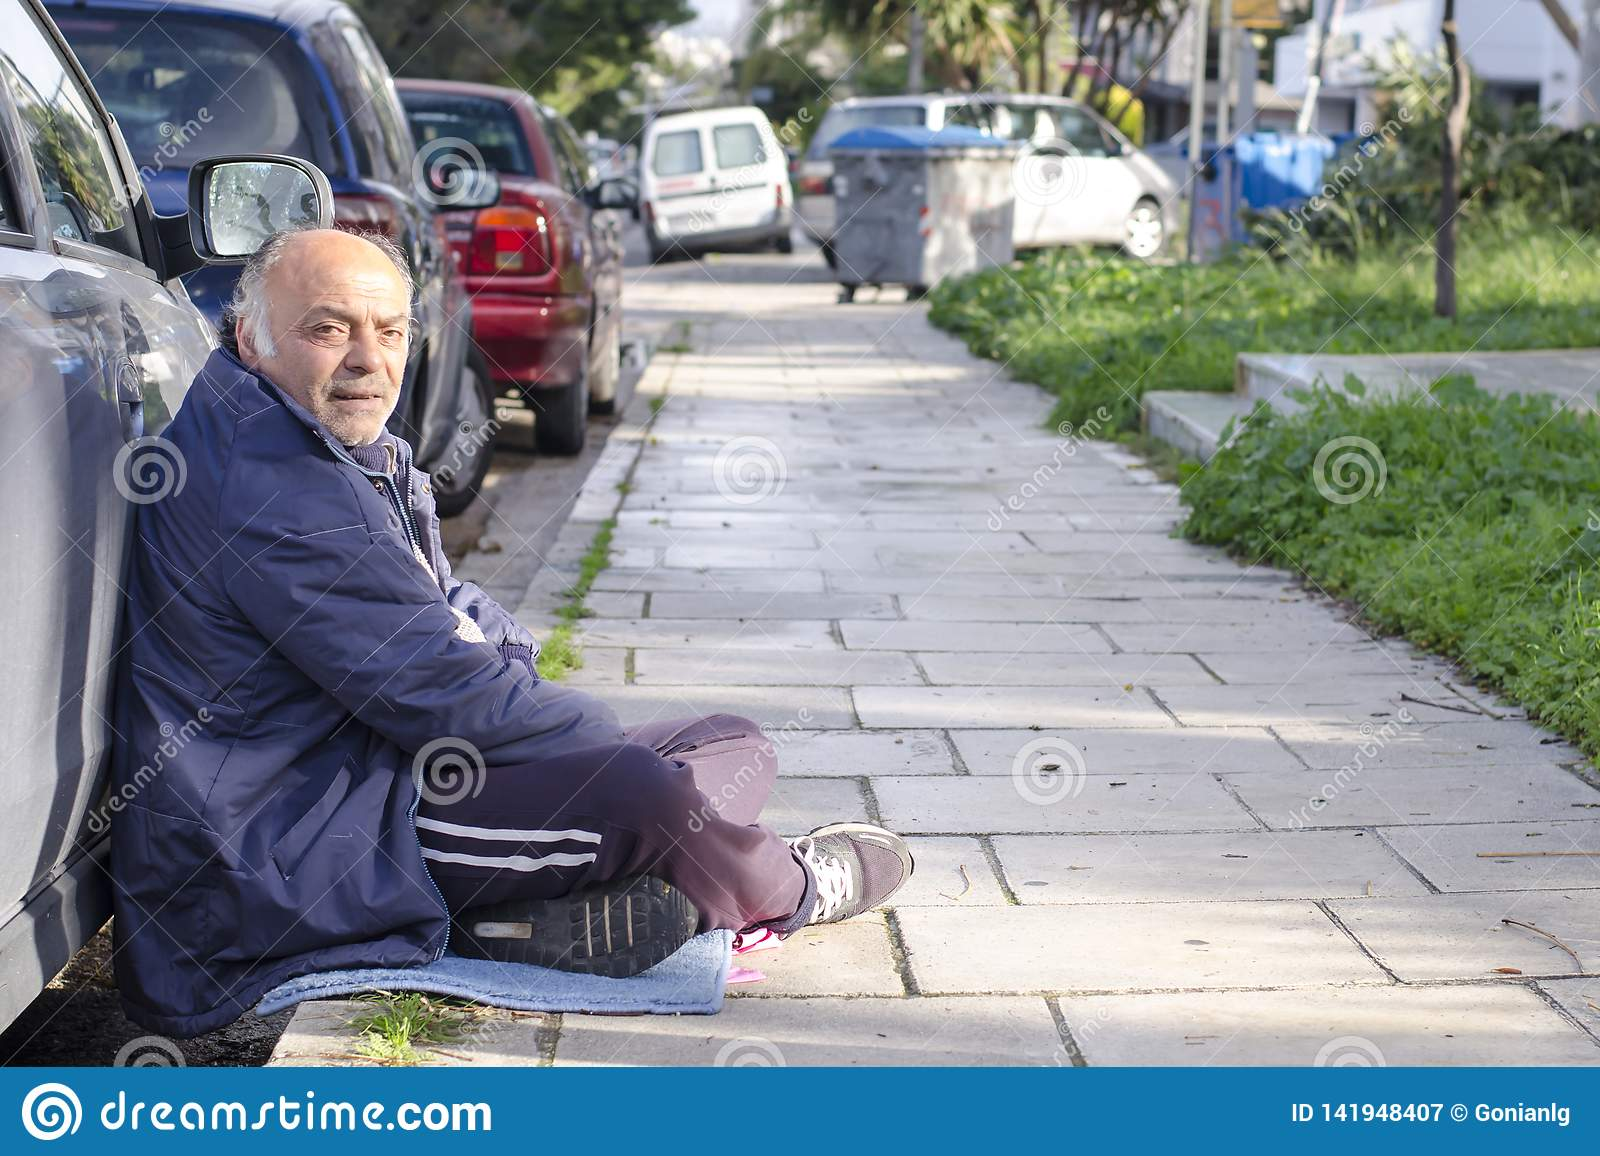 Athens, Greece / December 17,2018 Beggar asks for alms on the streets of Athens along the road cluttered with cars